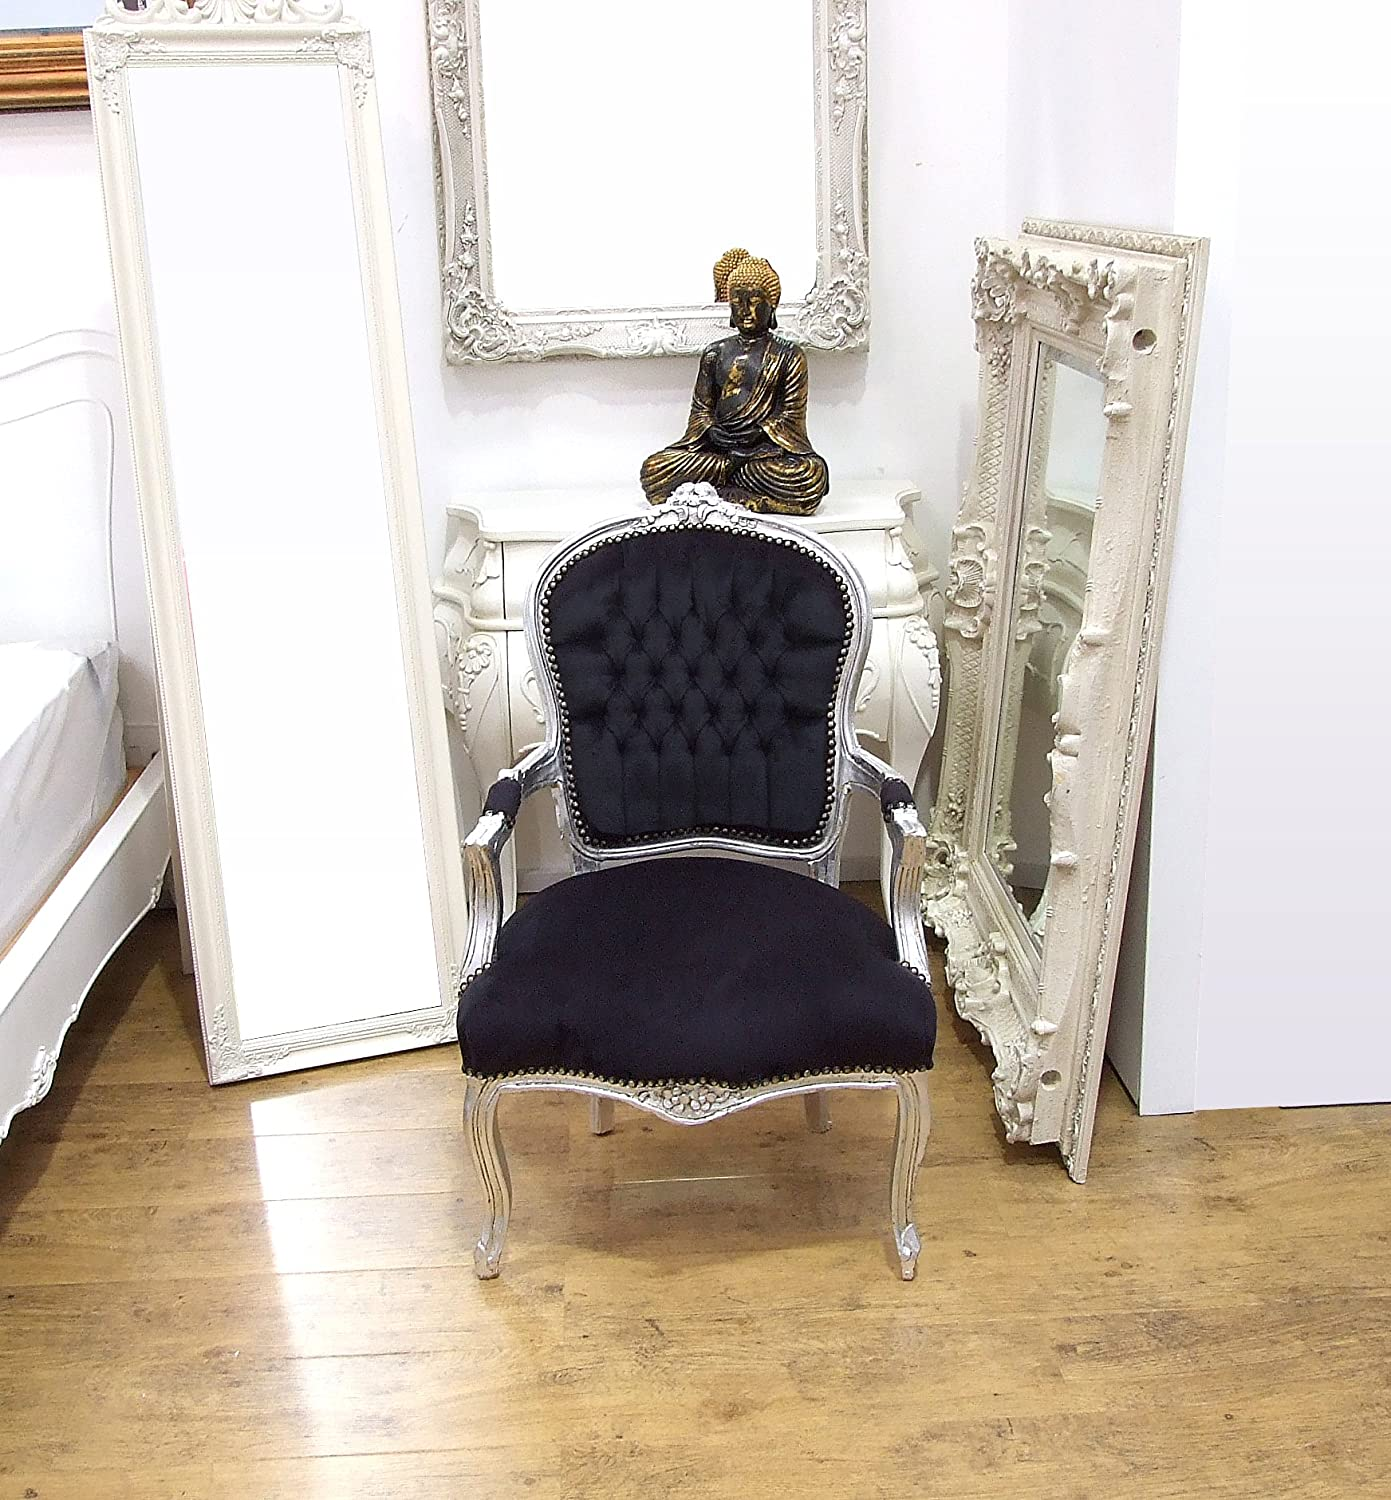 Vintage Retro Shabby Chic French Louis XV Style Chair With Black Fabric Upholstery And Silver Carved Wood Frame Amazoncouk Kitchen Home